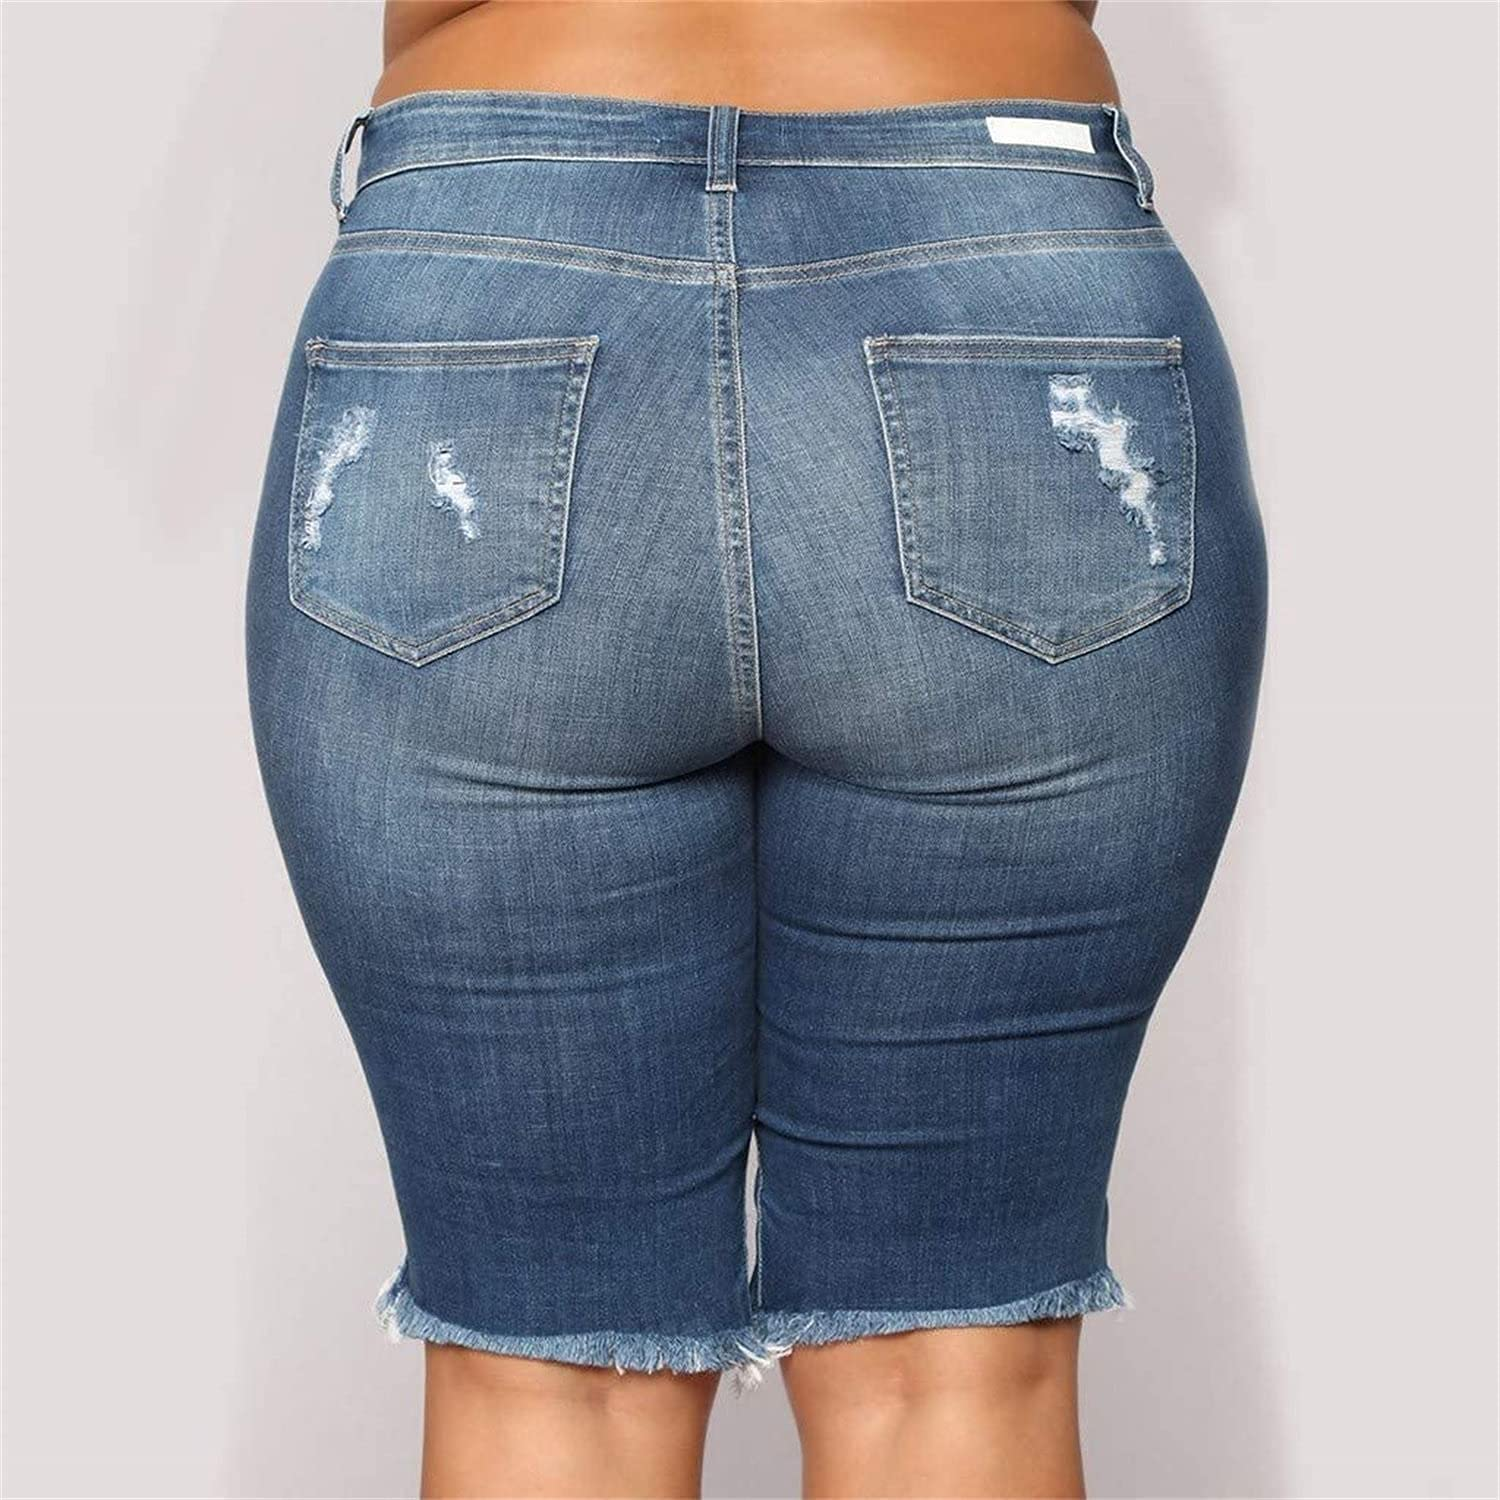 Ripped Bermuda Jean Shorts for Women Knee Length Plus Size Stretch Denim Shorts Distressed Short Jeans with Holes (Blue,Large)